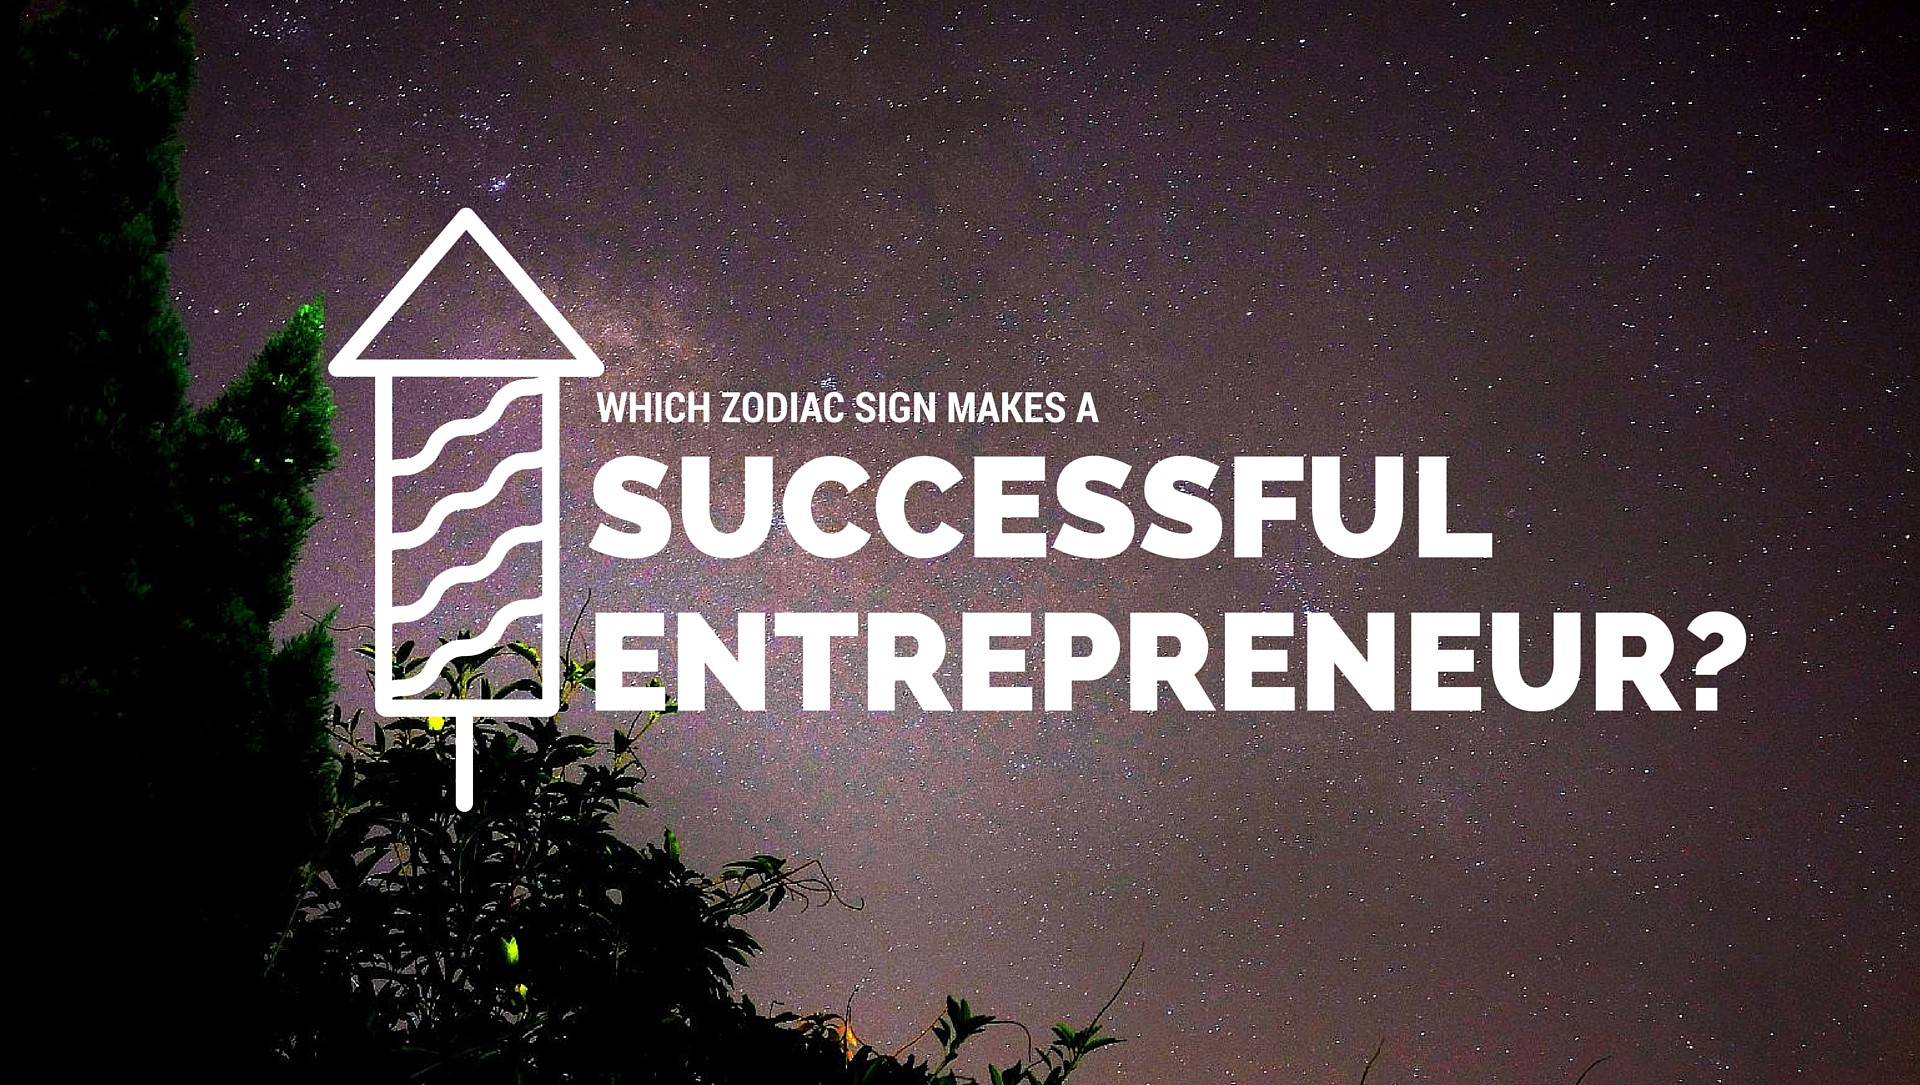 Which Zodiac Sign Makes A Successful Entrepreneur? - The